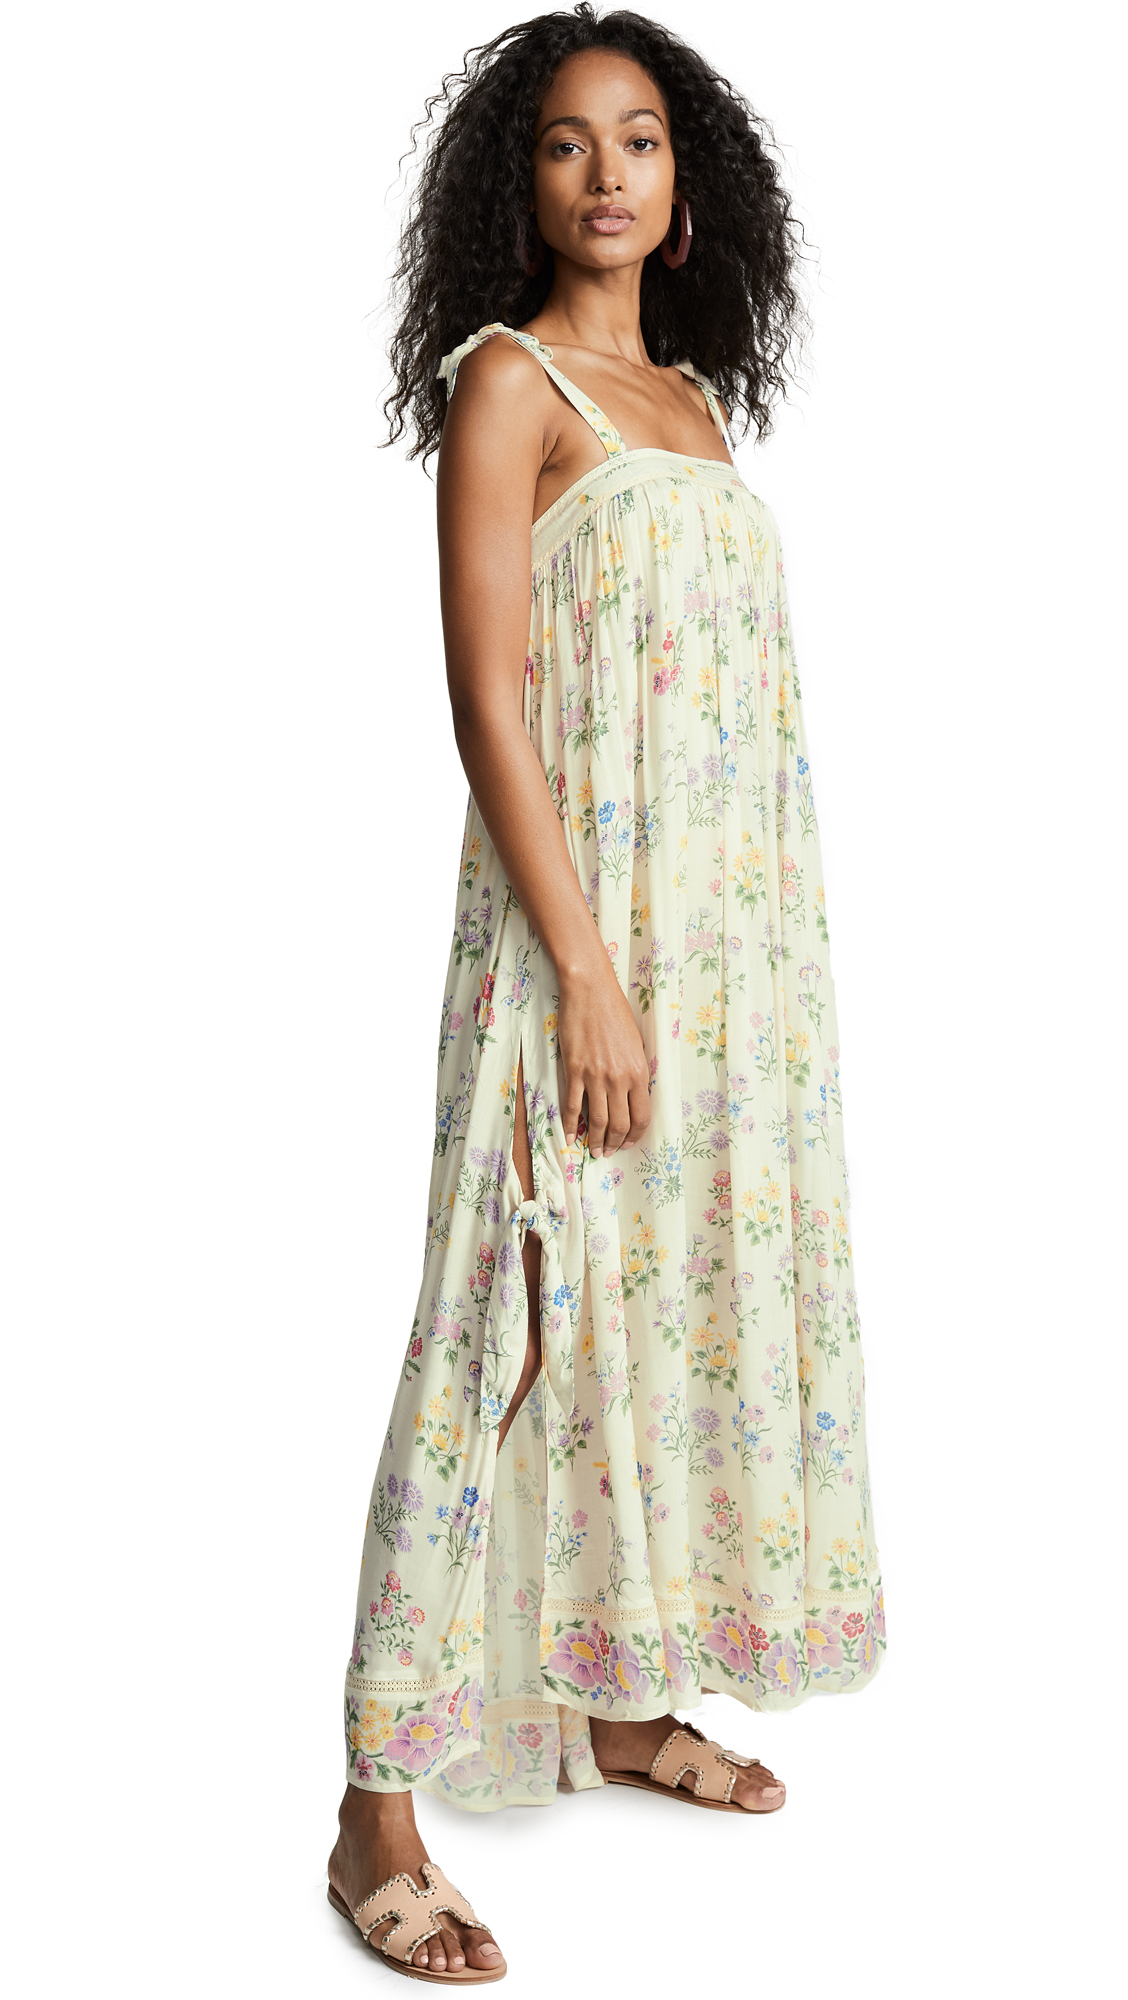 b394d86c373 Spell and the Gypsy Collective Posy Maxi Sundress